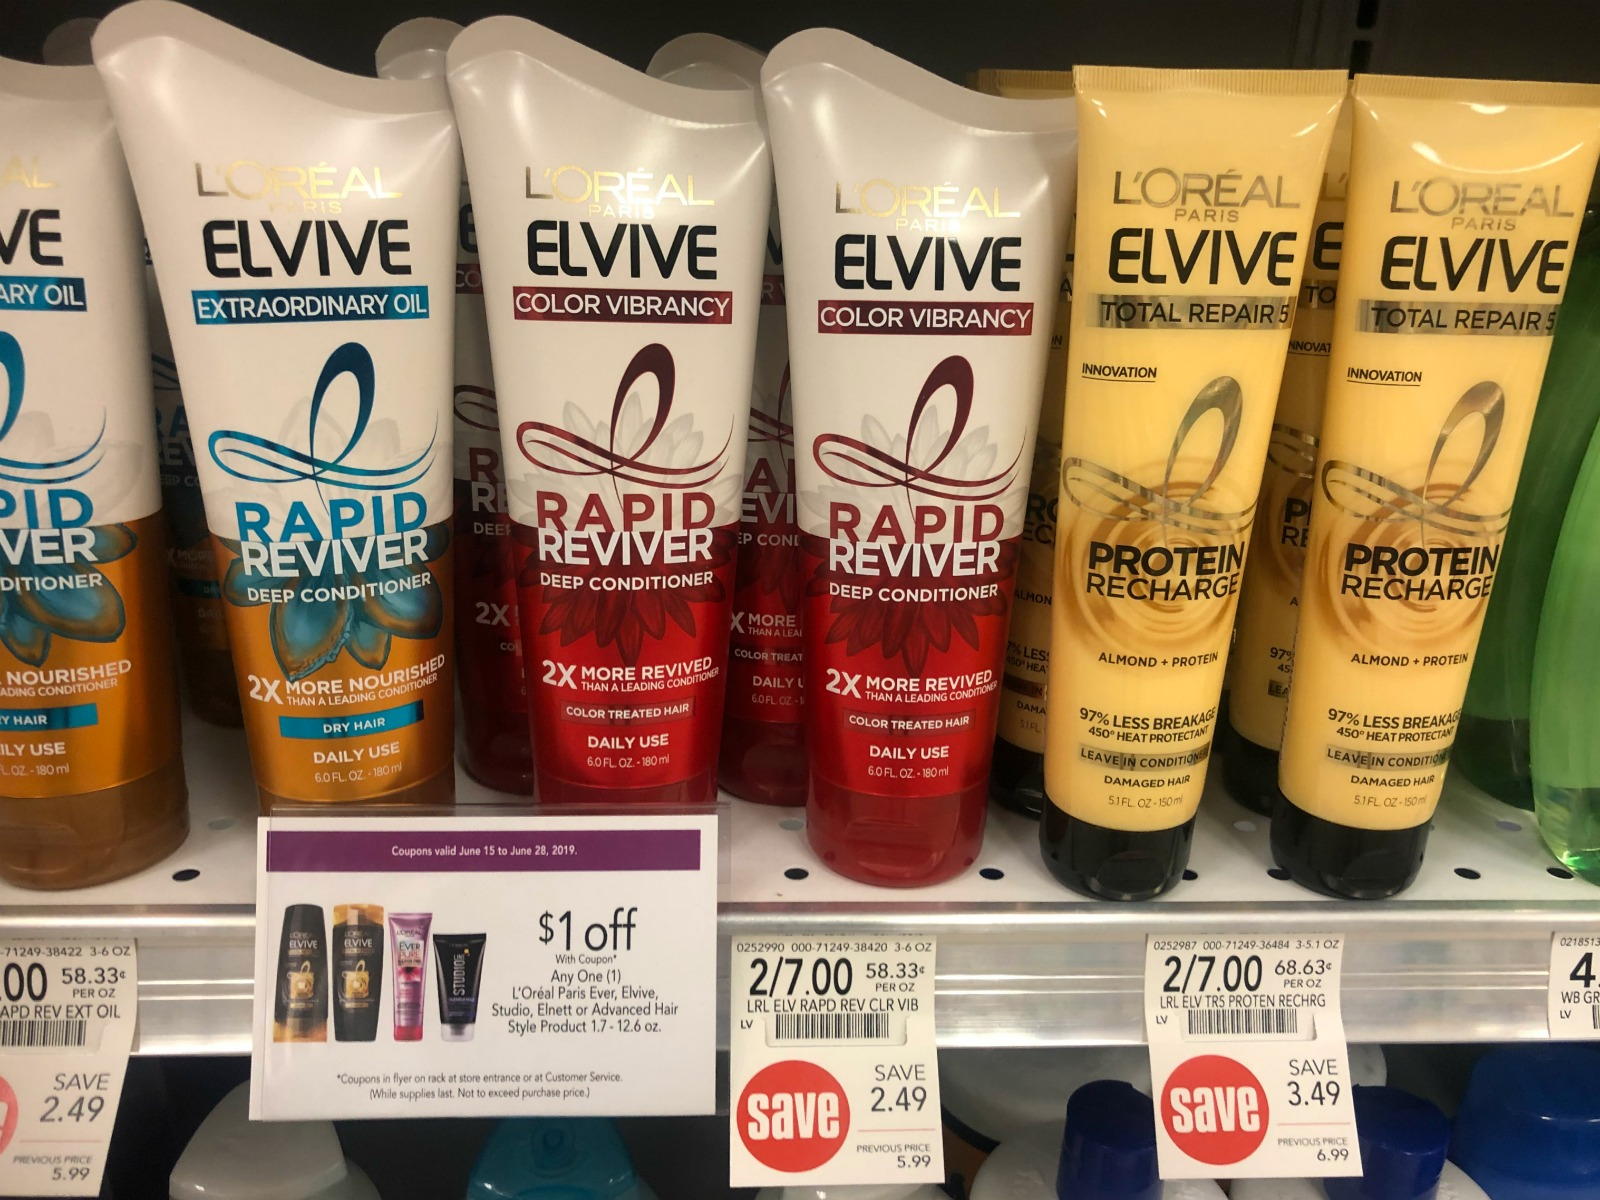 L'Oreal Paris Rapid Reviver As Low As FREE At Publix on I Heart Publix 1